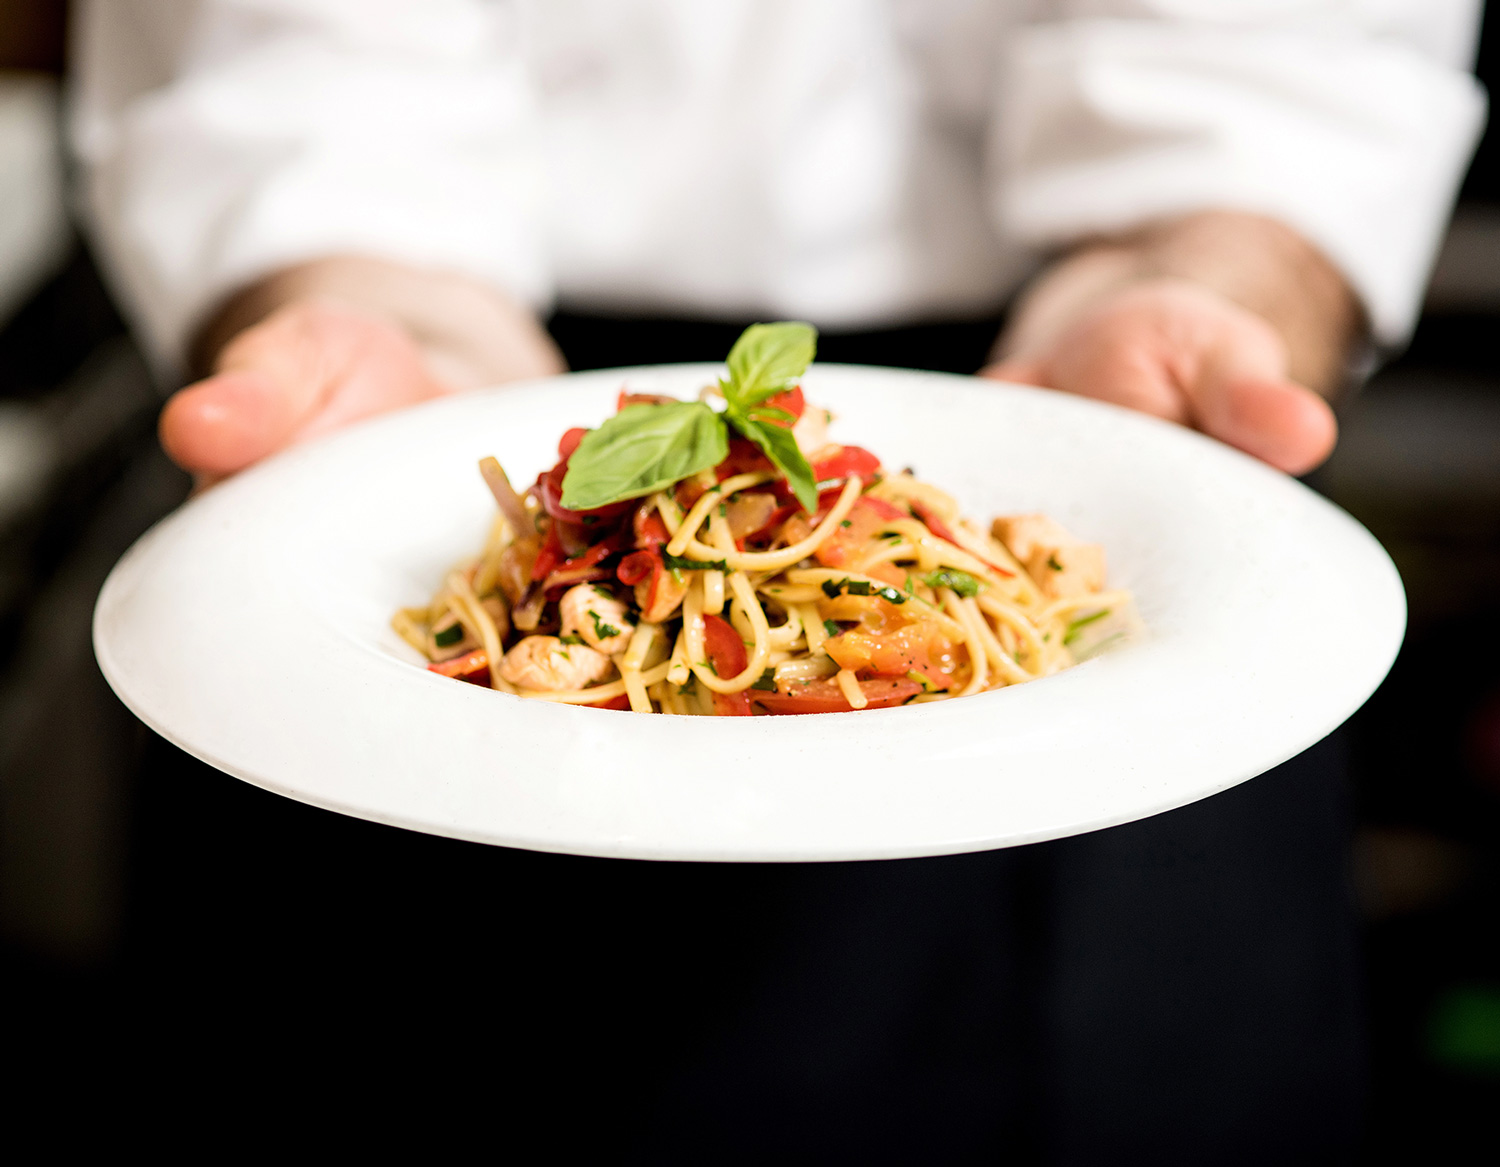 Si celebra oggi il World Pasta Day 2019